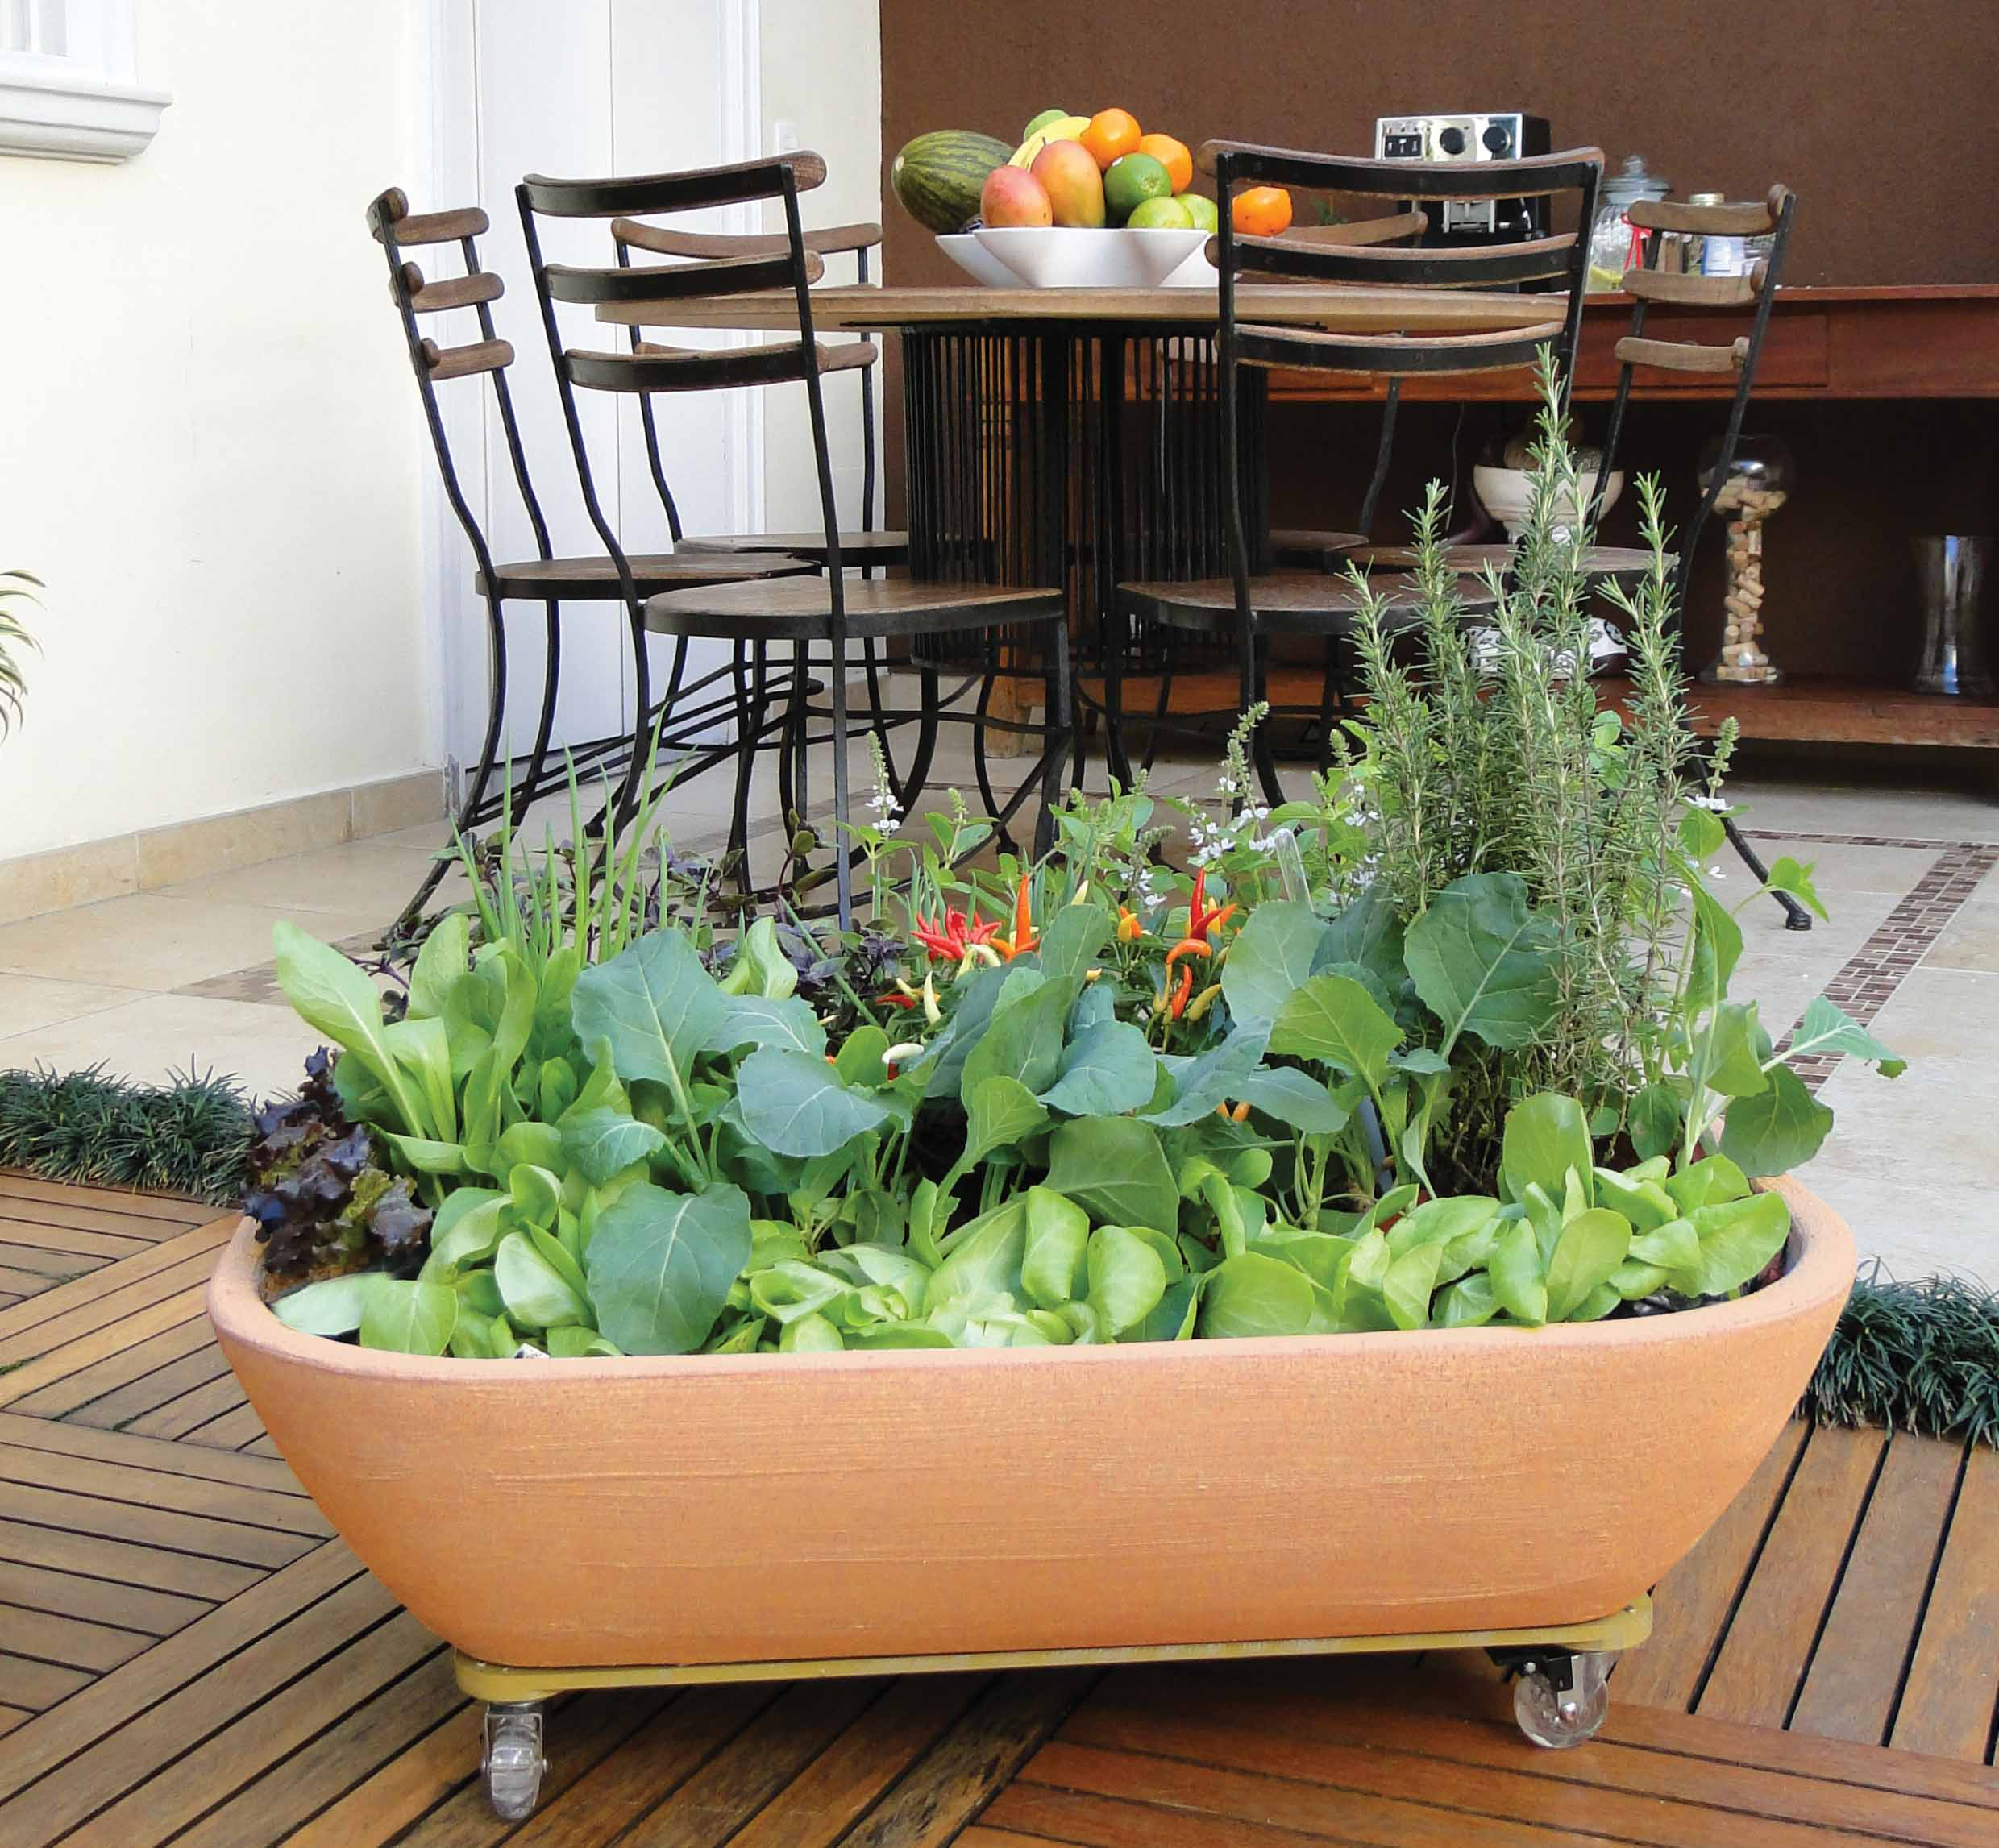 This self-watering kitchen planter is a smart choice for salad greens or frequently used herbs. Credit: Jackson Pottery / jacksonpottery.com